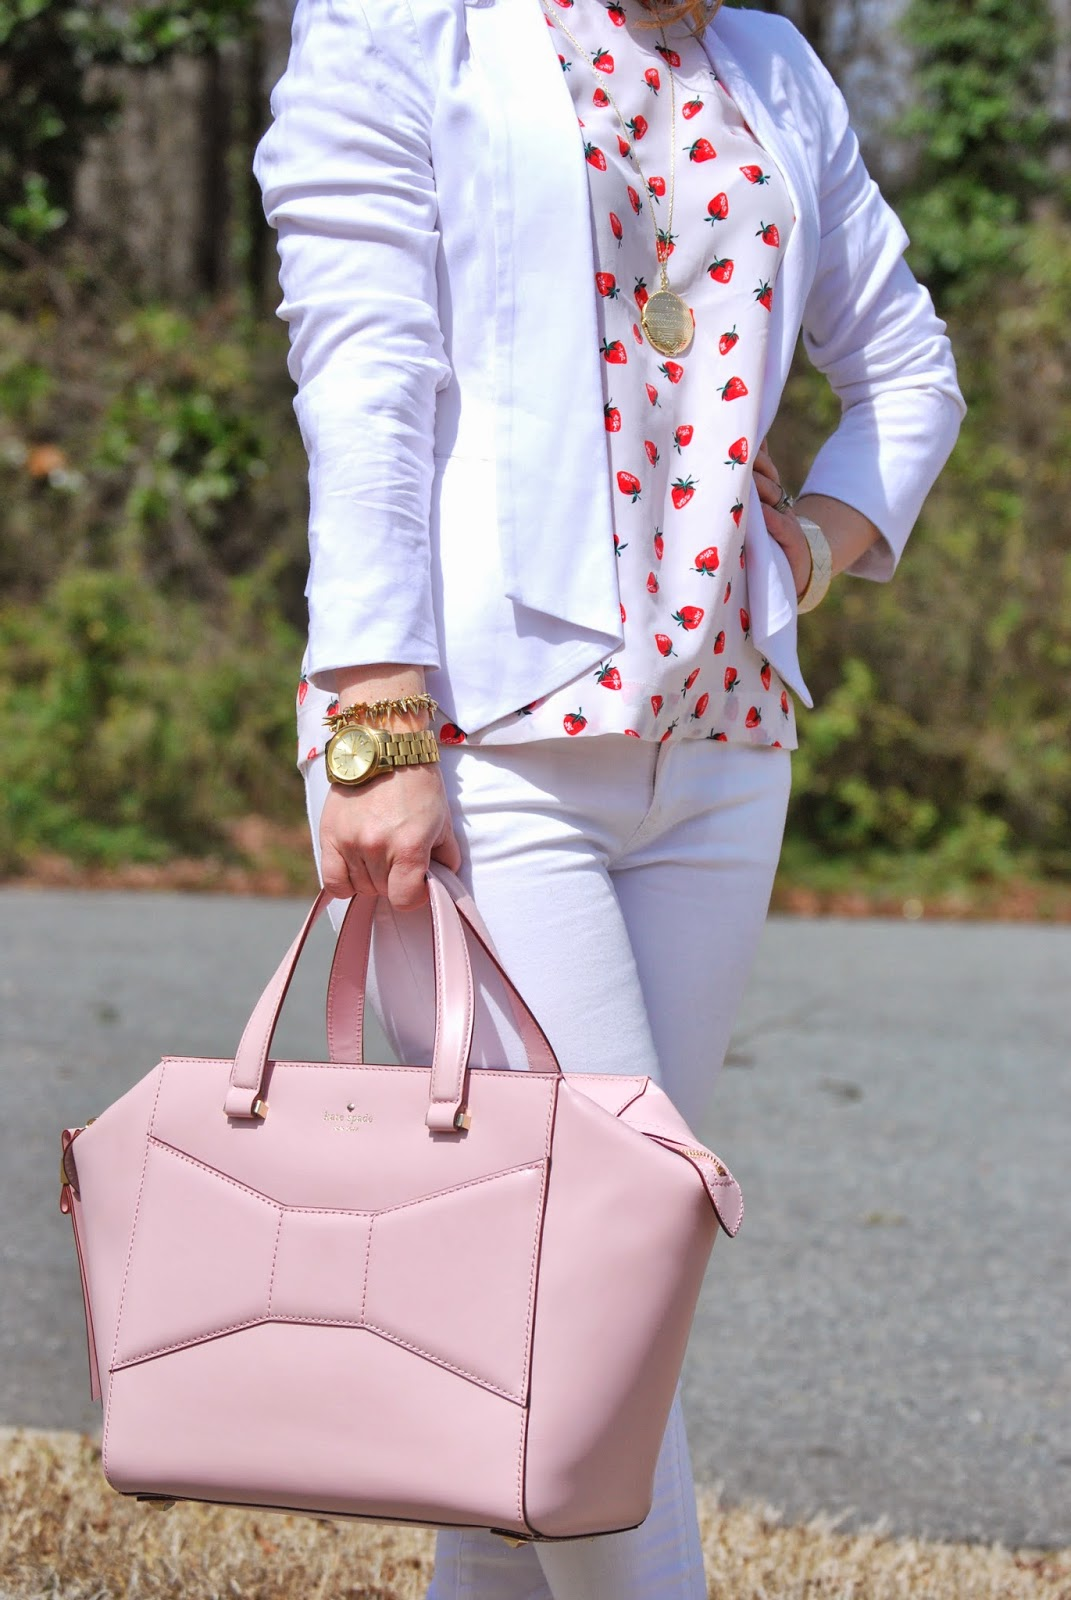 Equipment, strawberries, Loeffler Randall, Kate Spade, Beau Bag, Gap, Micheal Kors, Stella and Dot